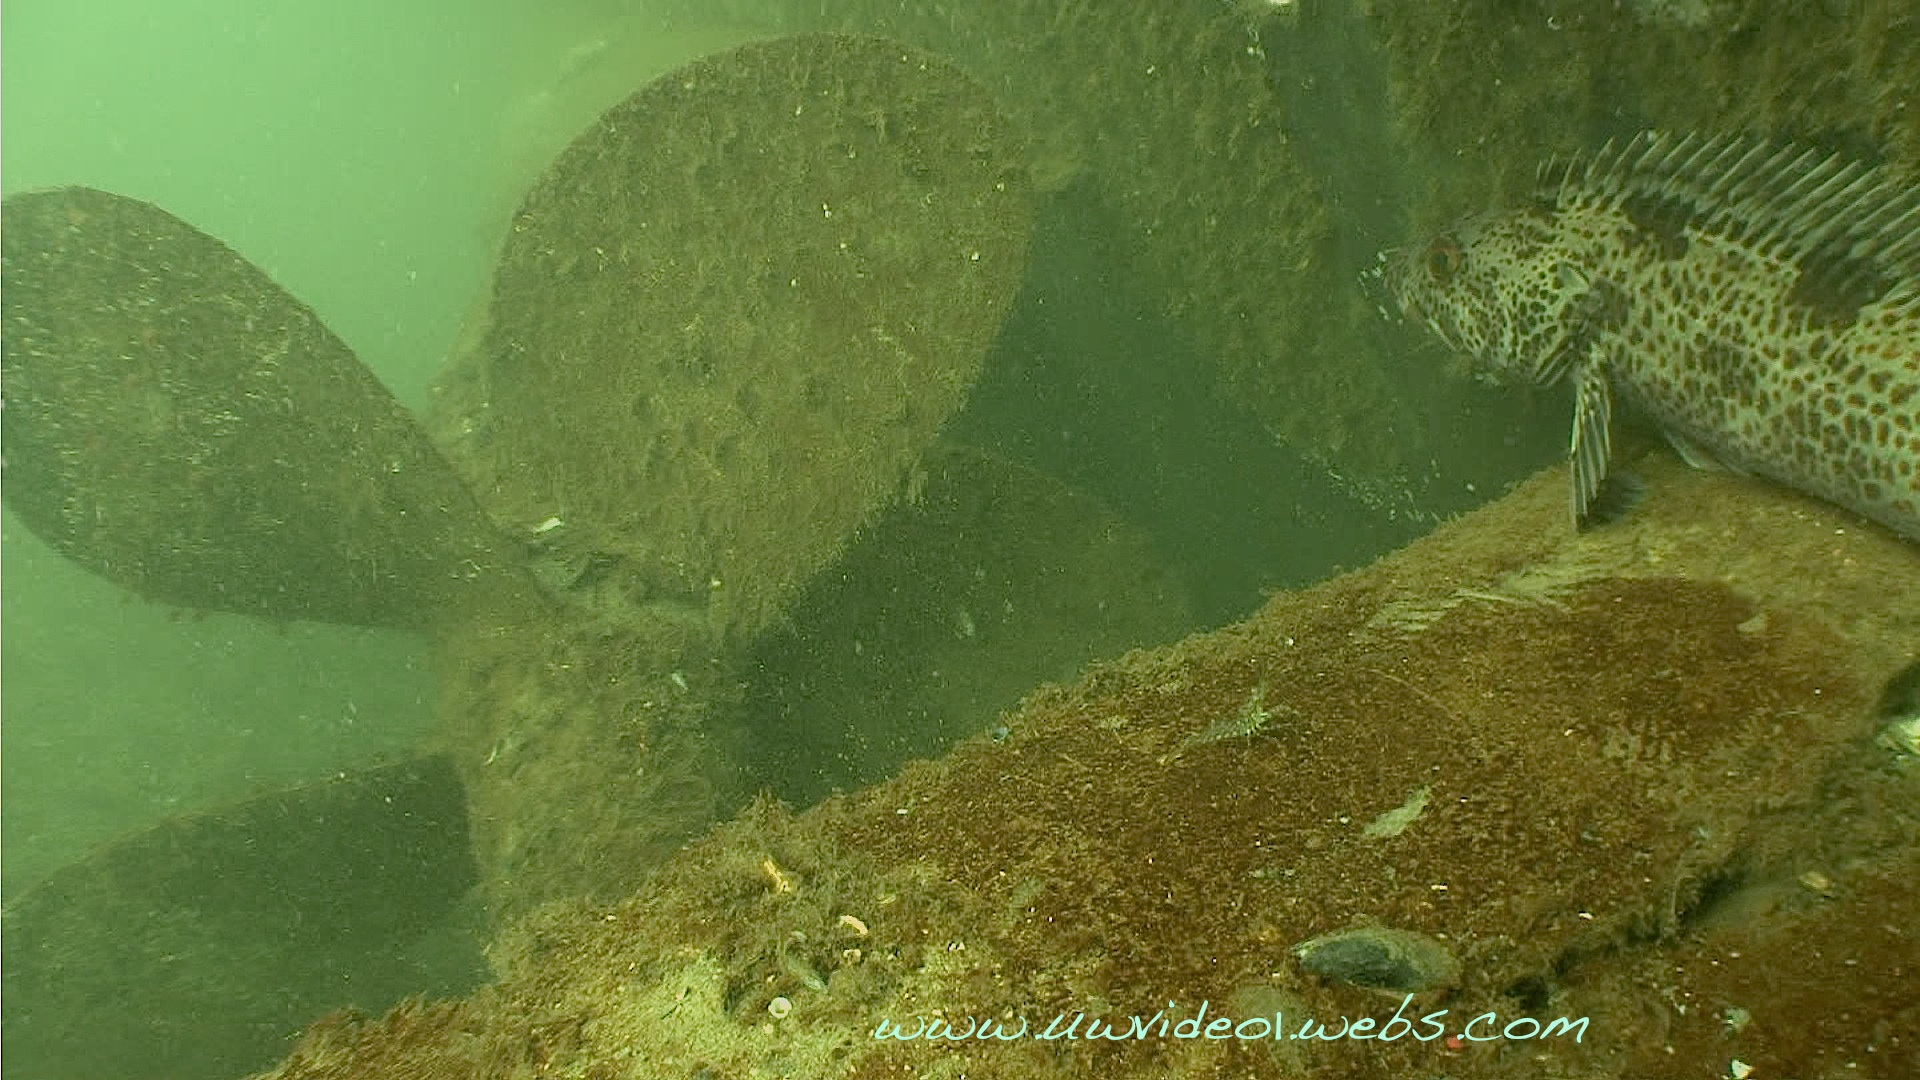 Lingcod on propeller